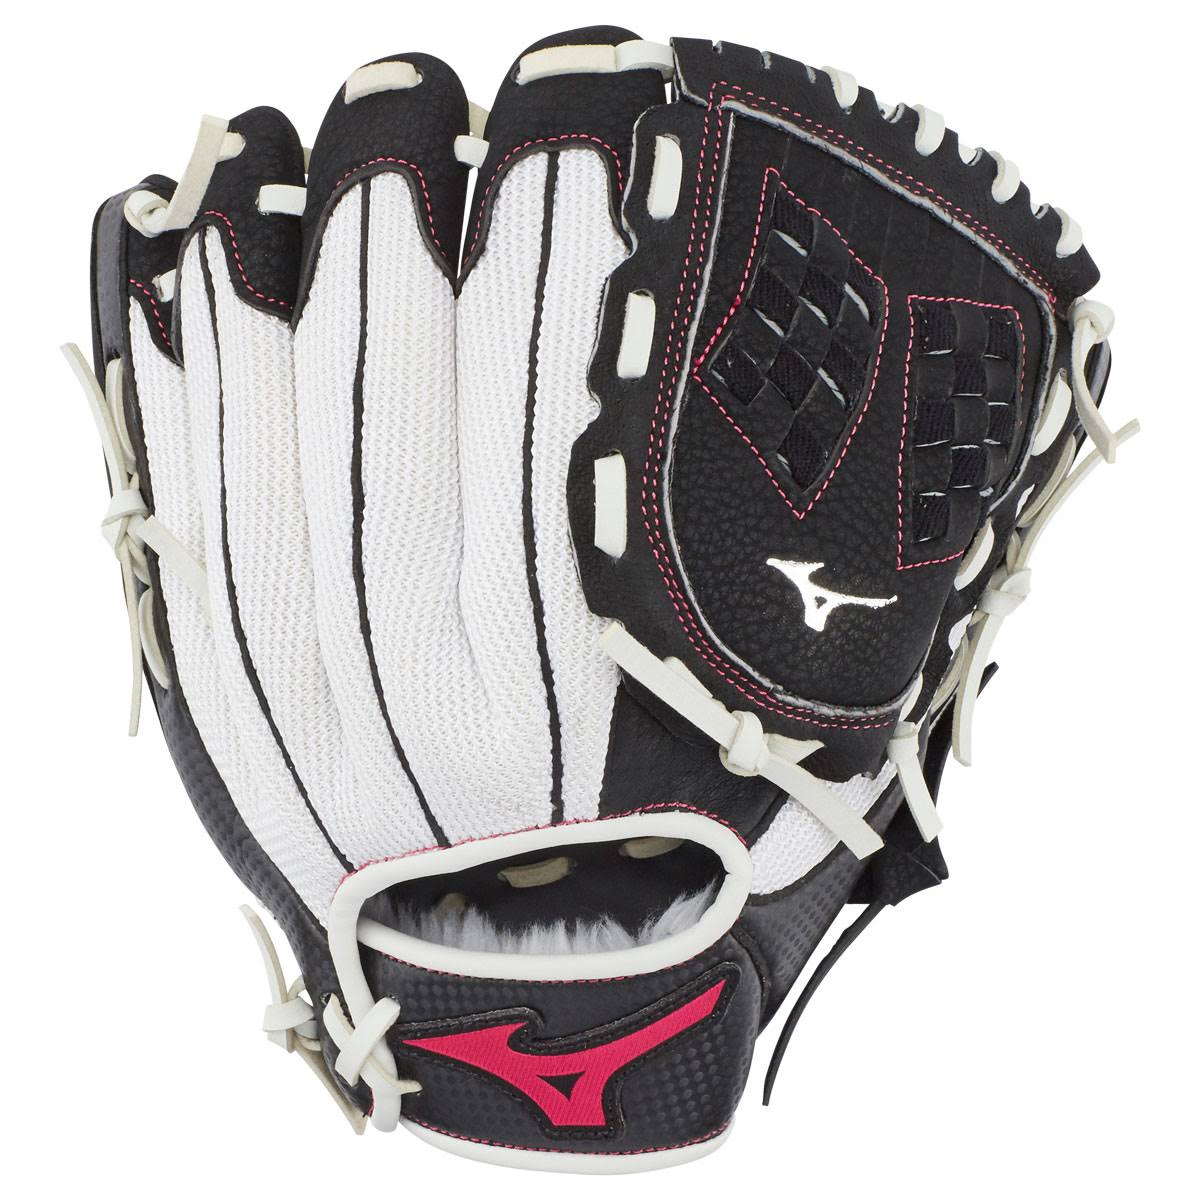 Mizuno Finch Series Softball Glove - Right Handed, 10""